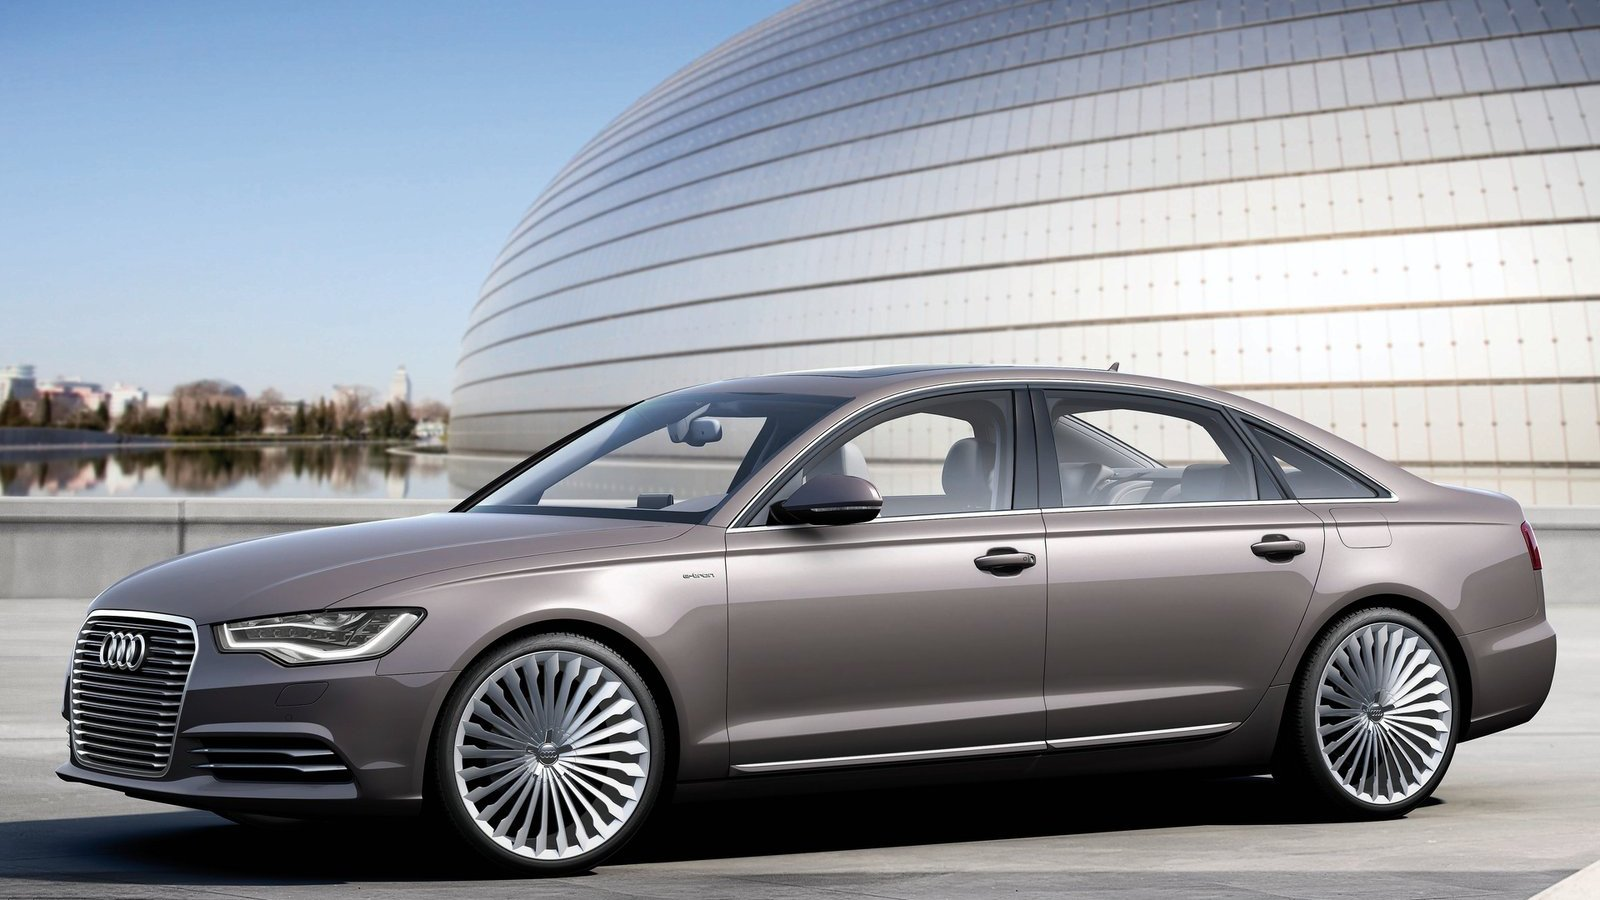 Latest Audi A6 L E Tron Hd Wallpapers The World Of Audi Free Download